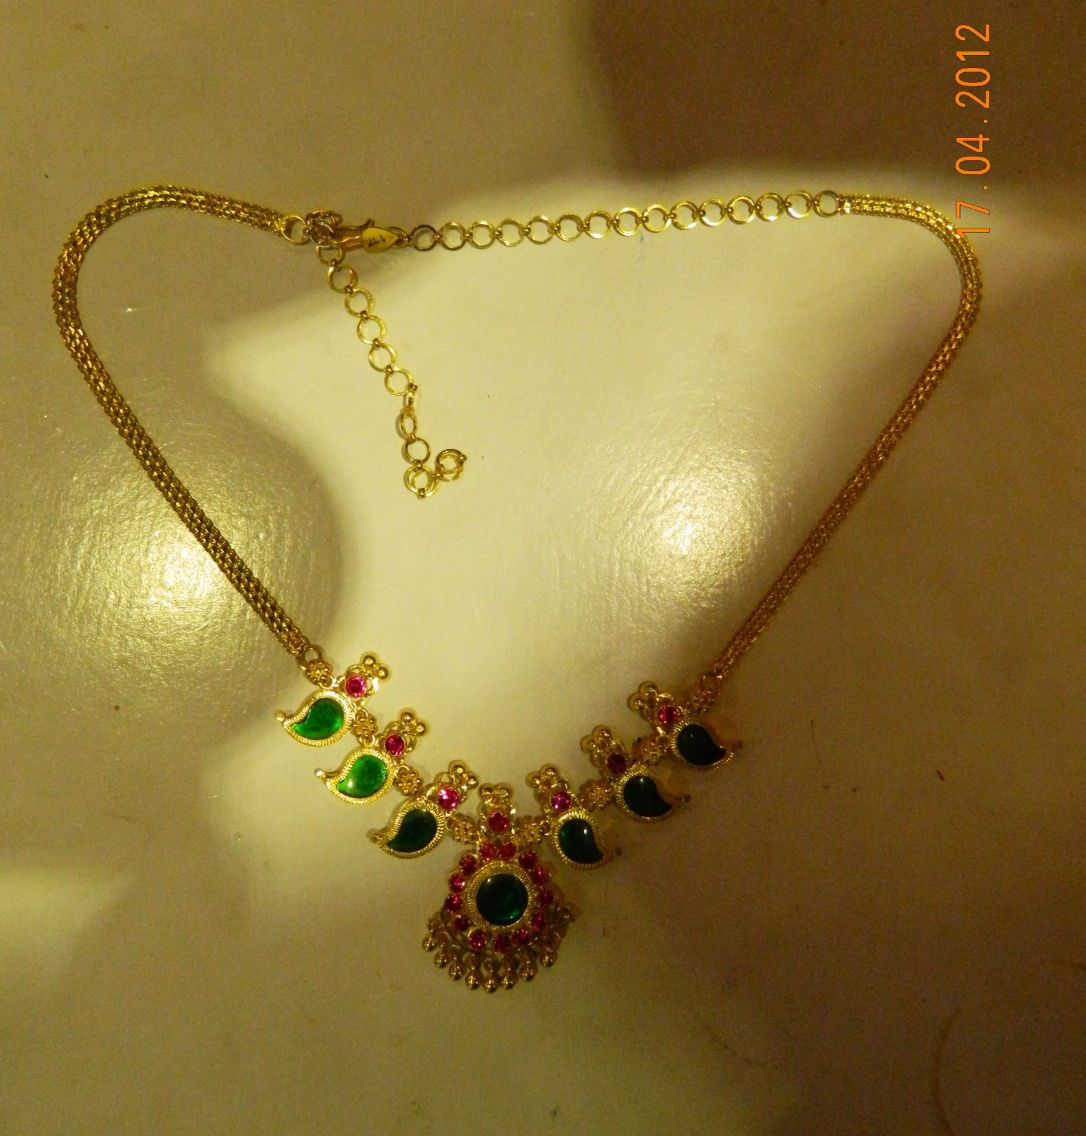 For Ammini Jewelry Patterns Gold Jewelry Simple